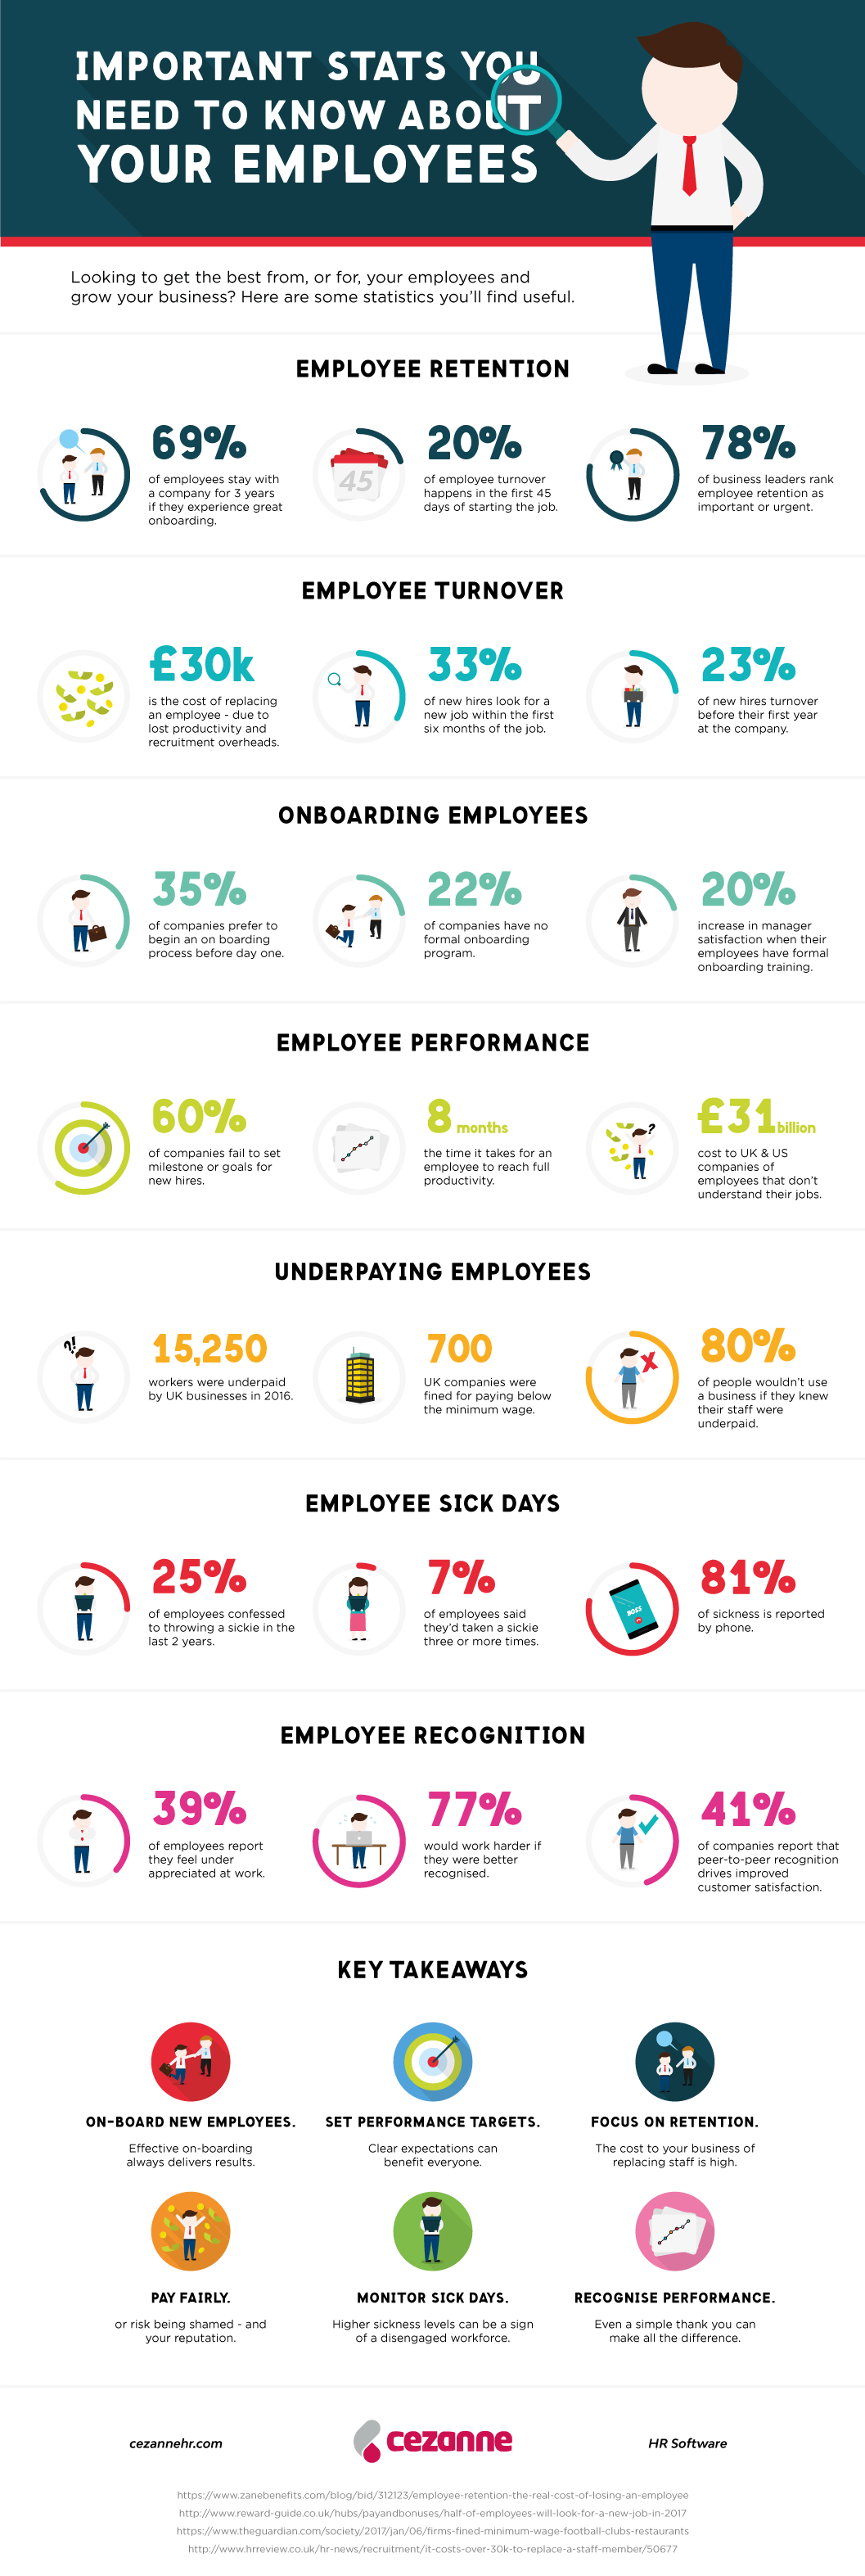 Important-stats-to-know-about-your-employees